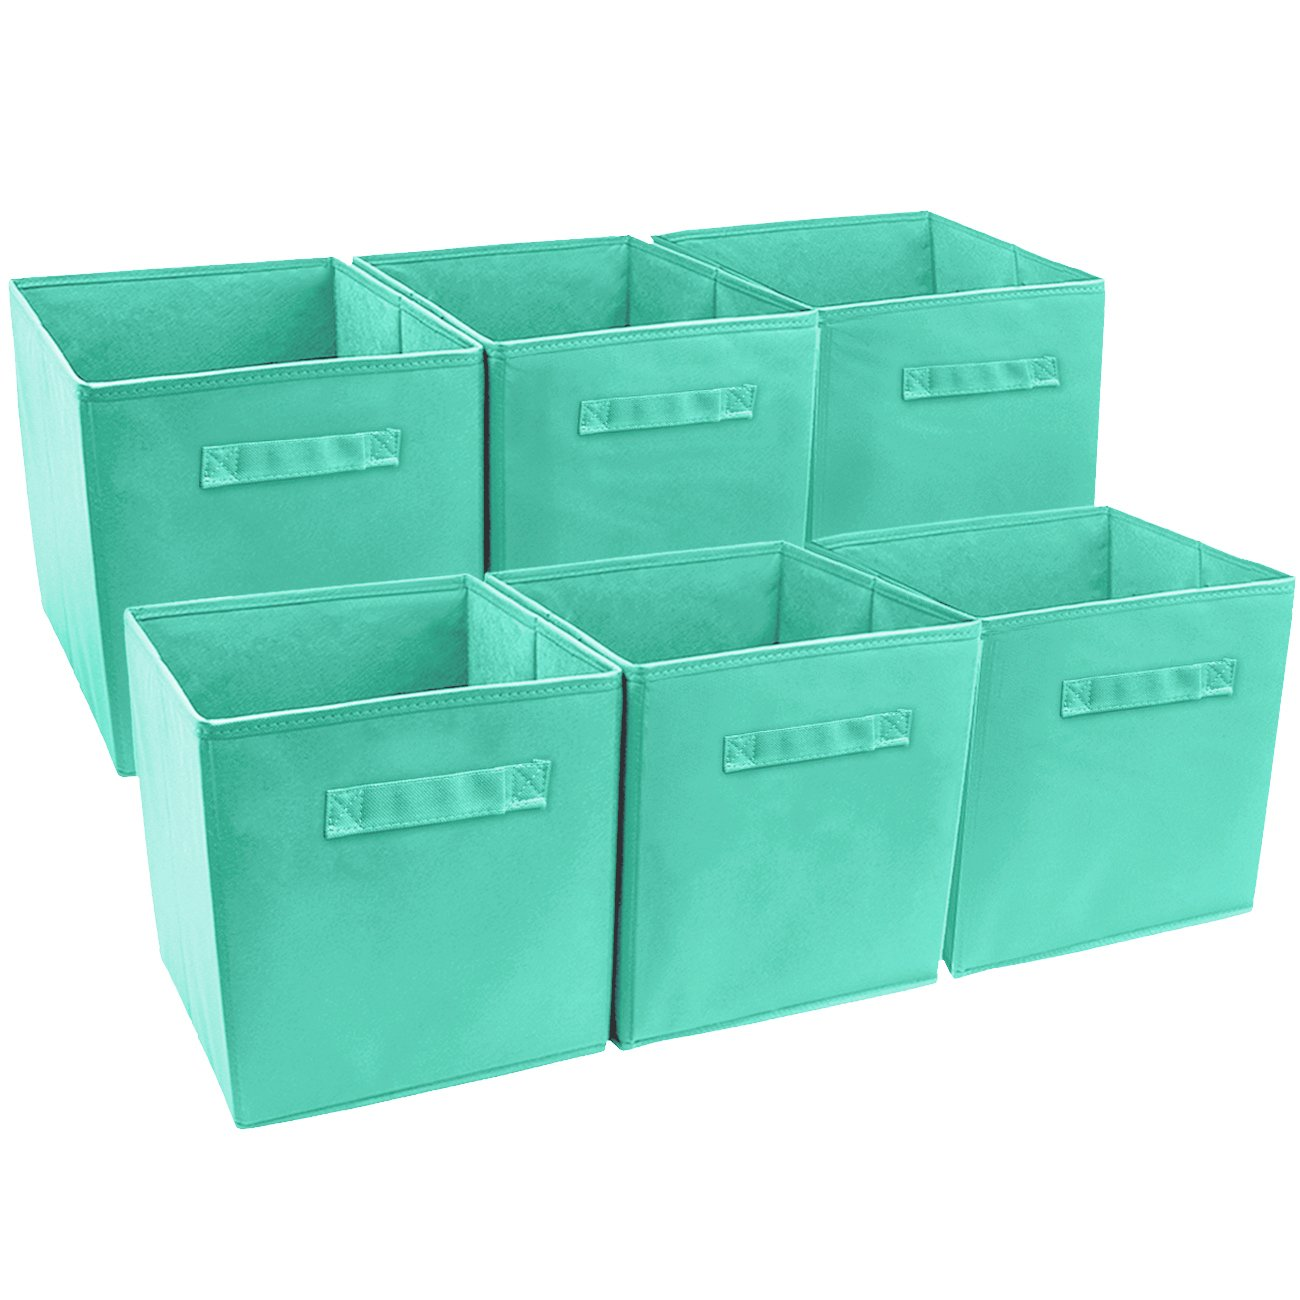 Sorbus Foldable Storage Cube Basket Bin (6 Pack, Teal)